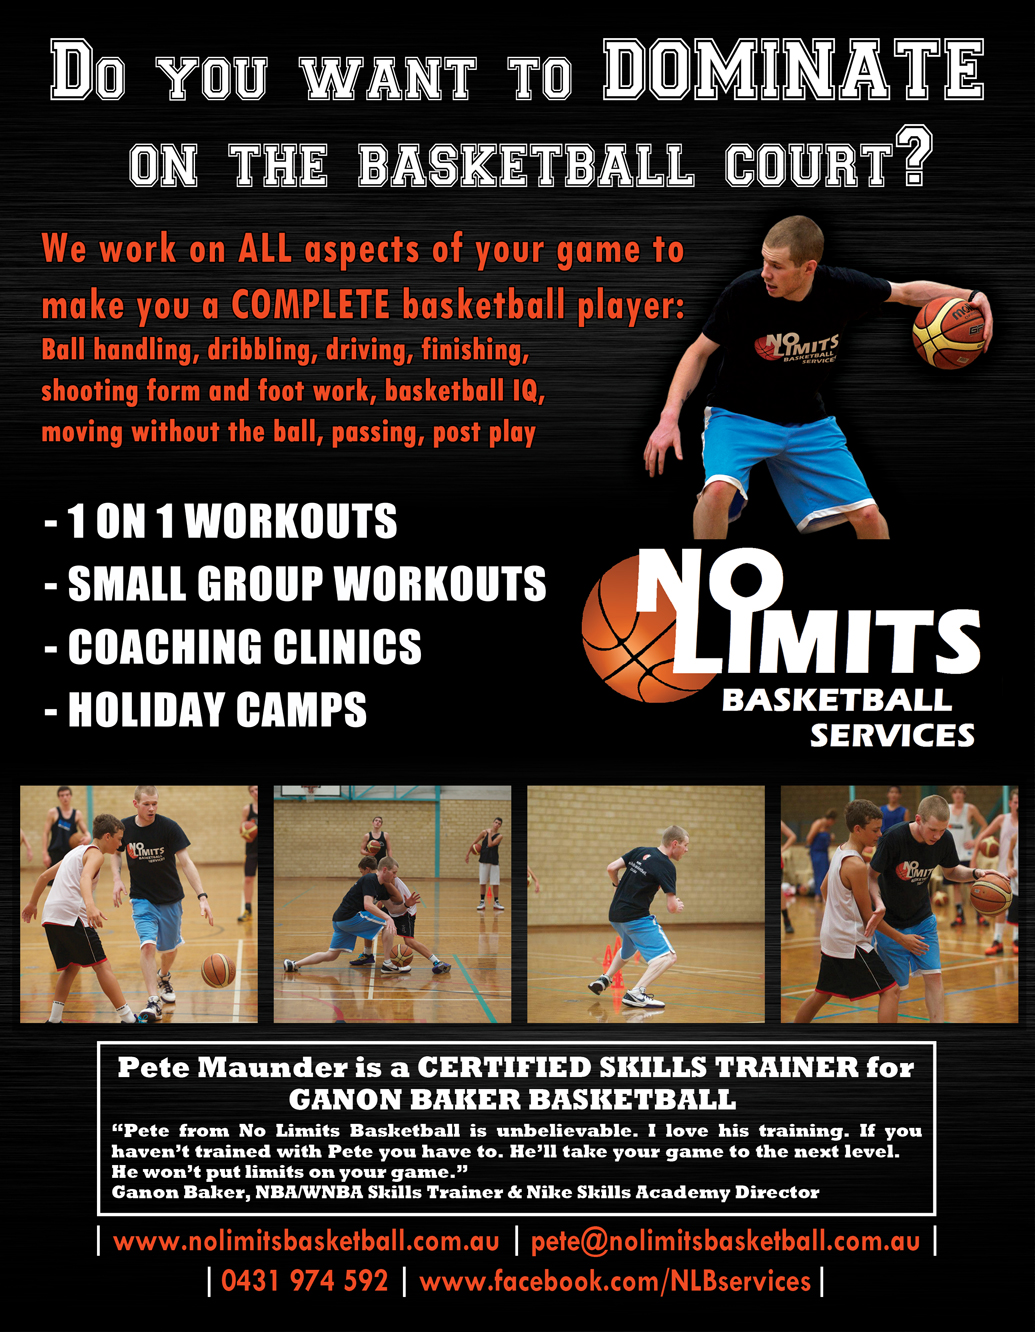 Flyer Design By Janith N. For Basketball Training Company Flyer Design    Design #2247791